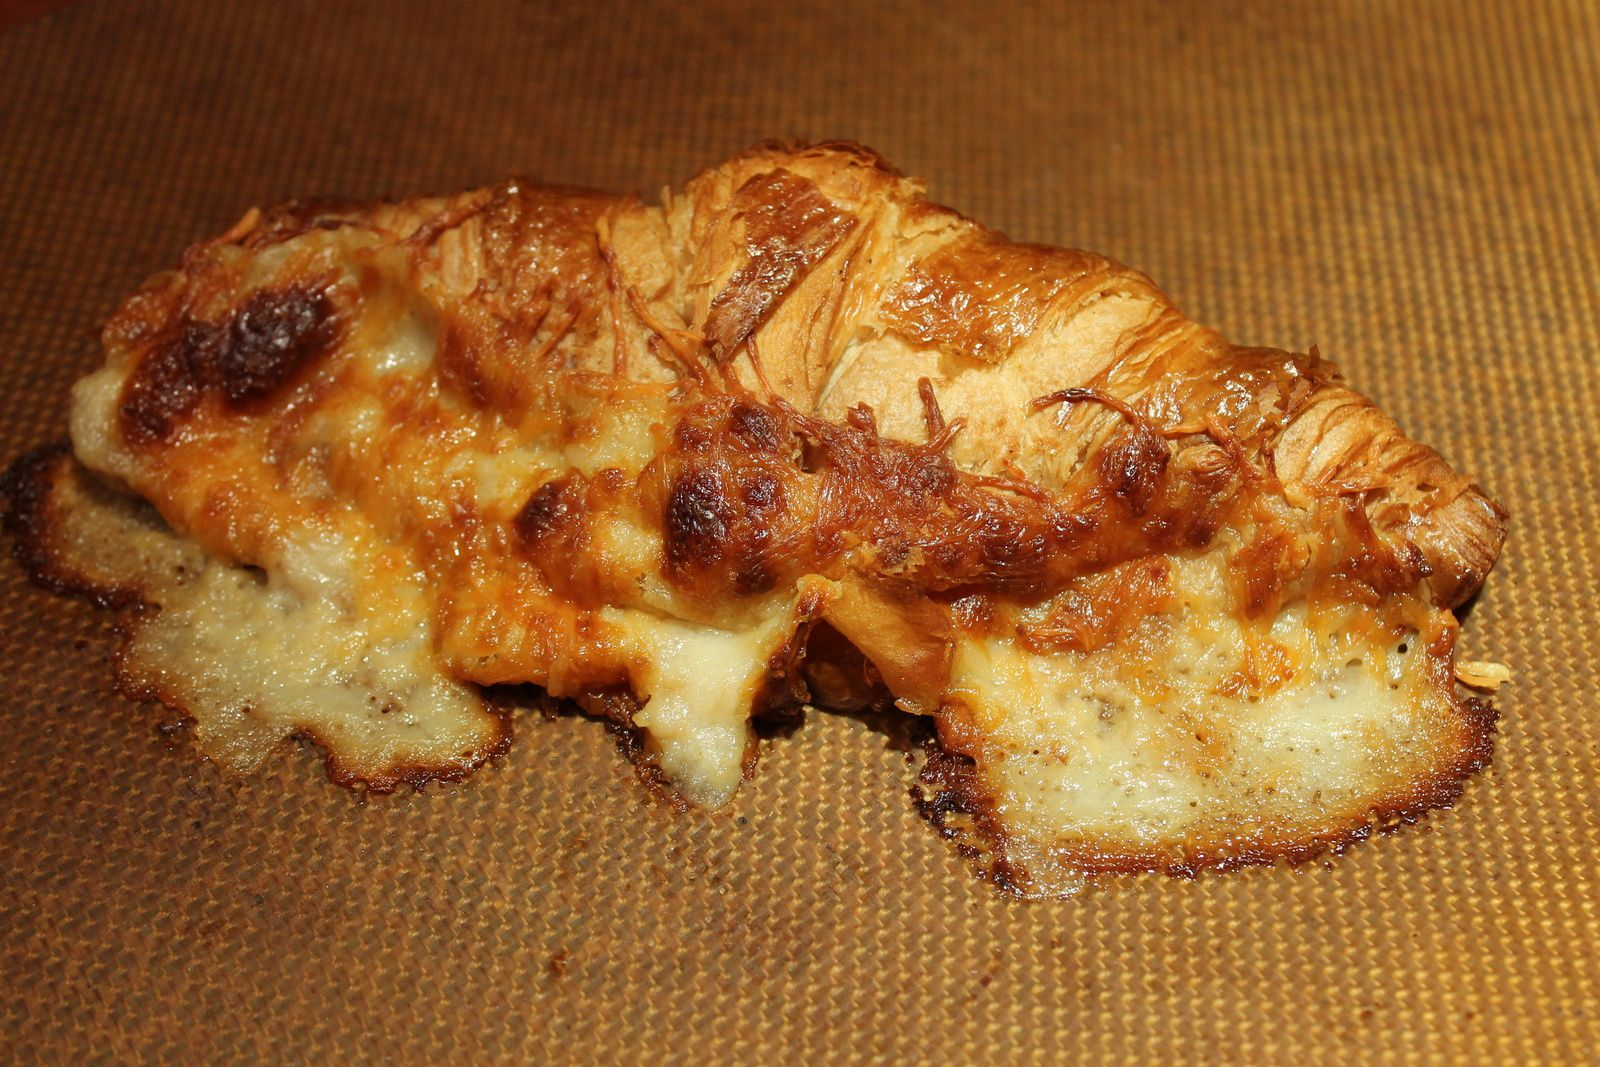 Croissant jambon-fromage.